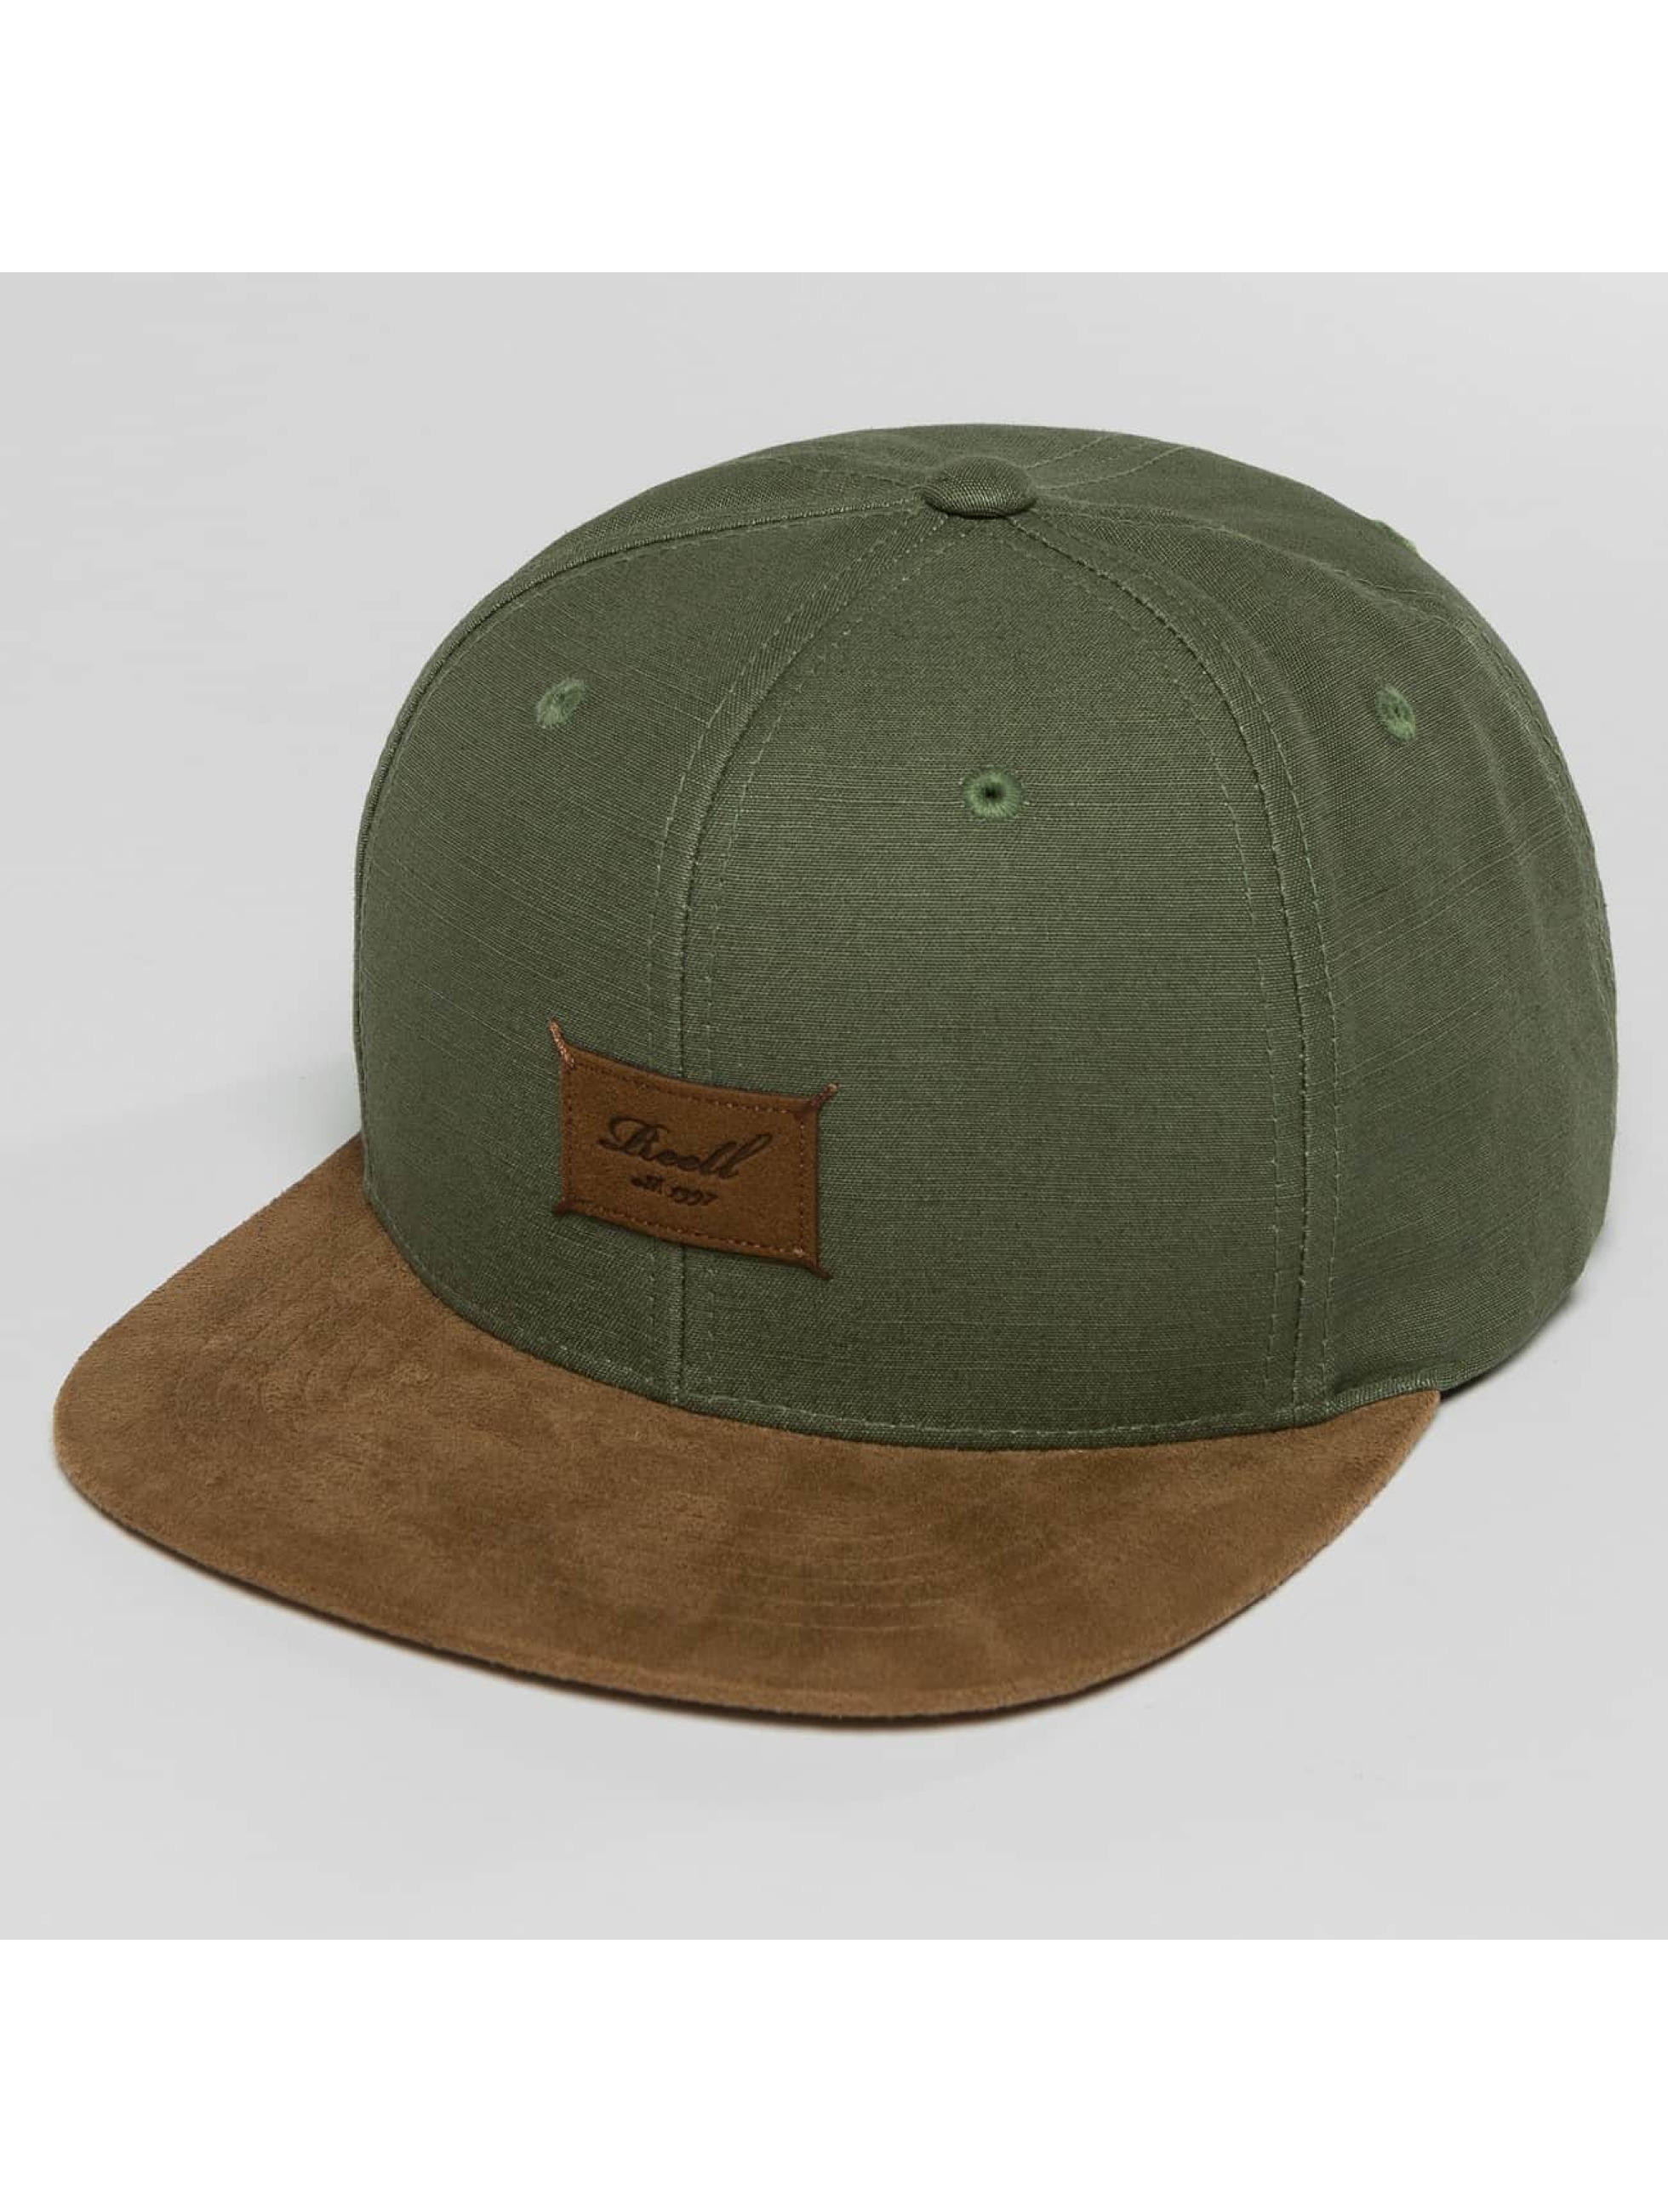 Reell Jeans Gorra Snapback Suede oliva